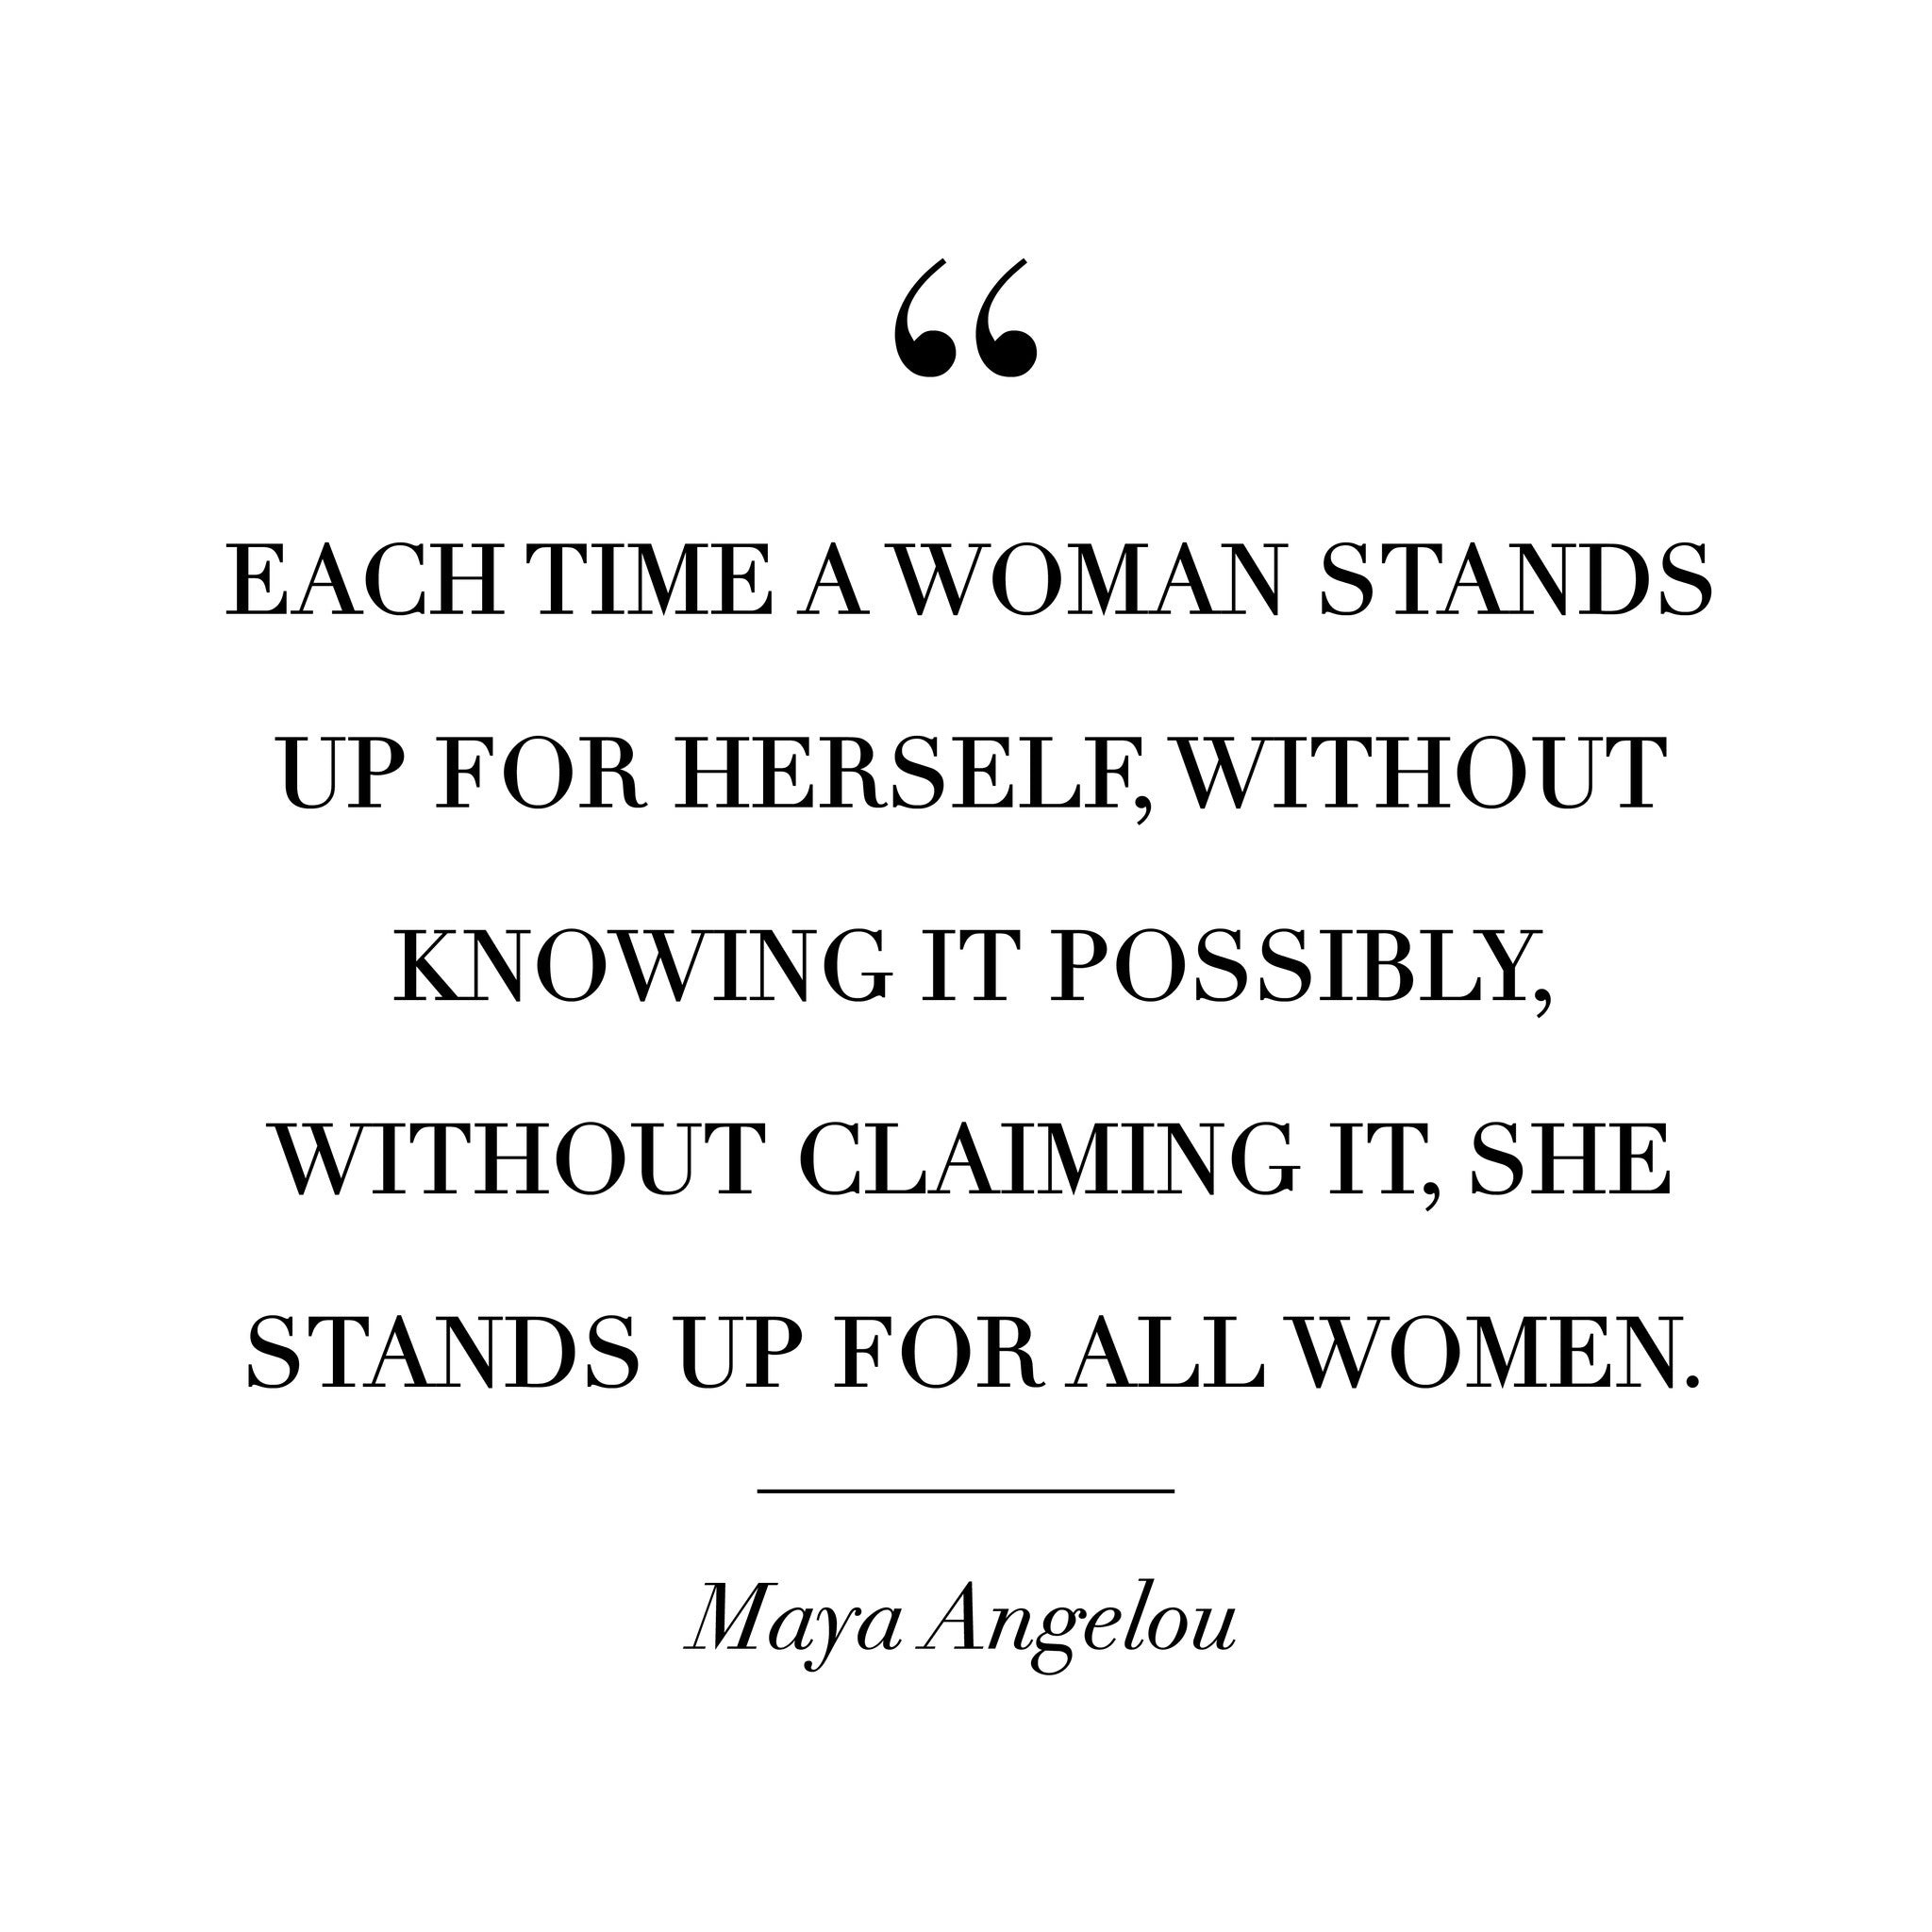 Empowering Women Quotes 8 Empowering Quotes  Of Mercer